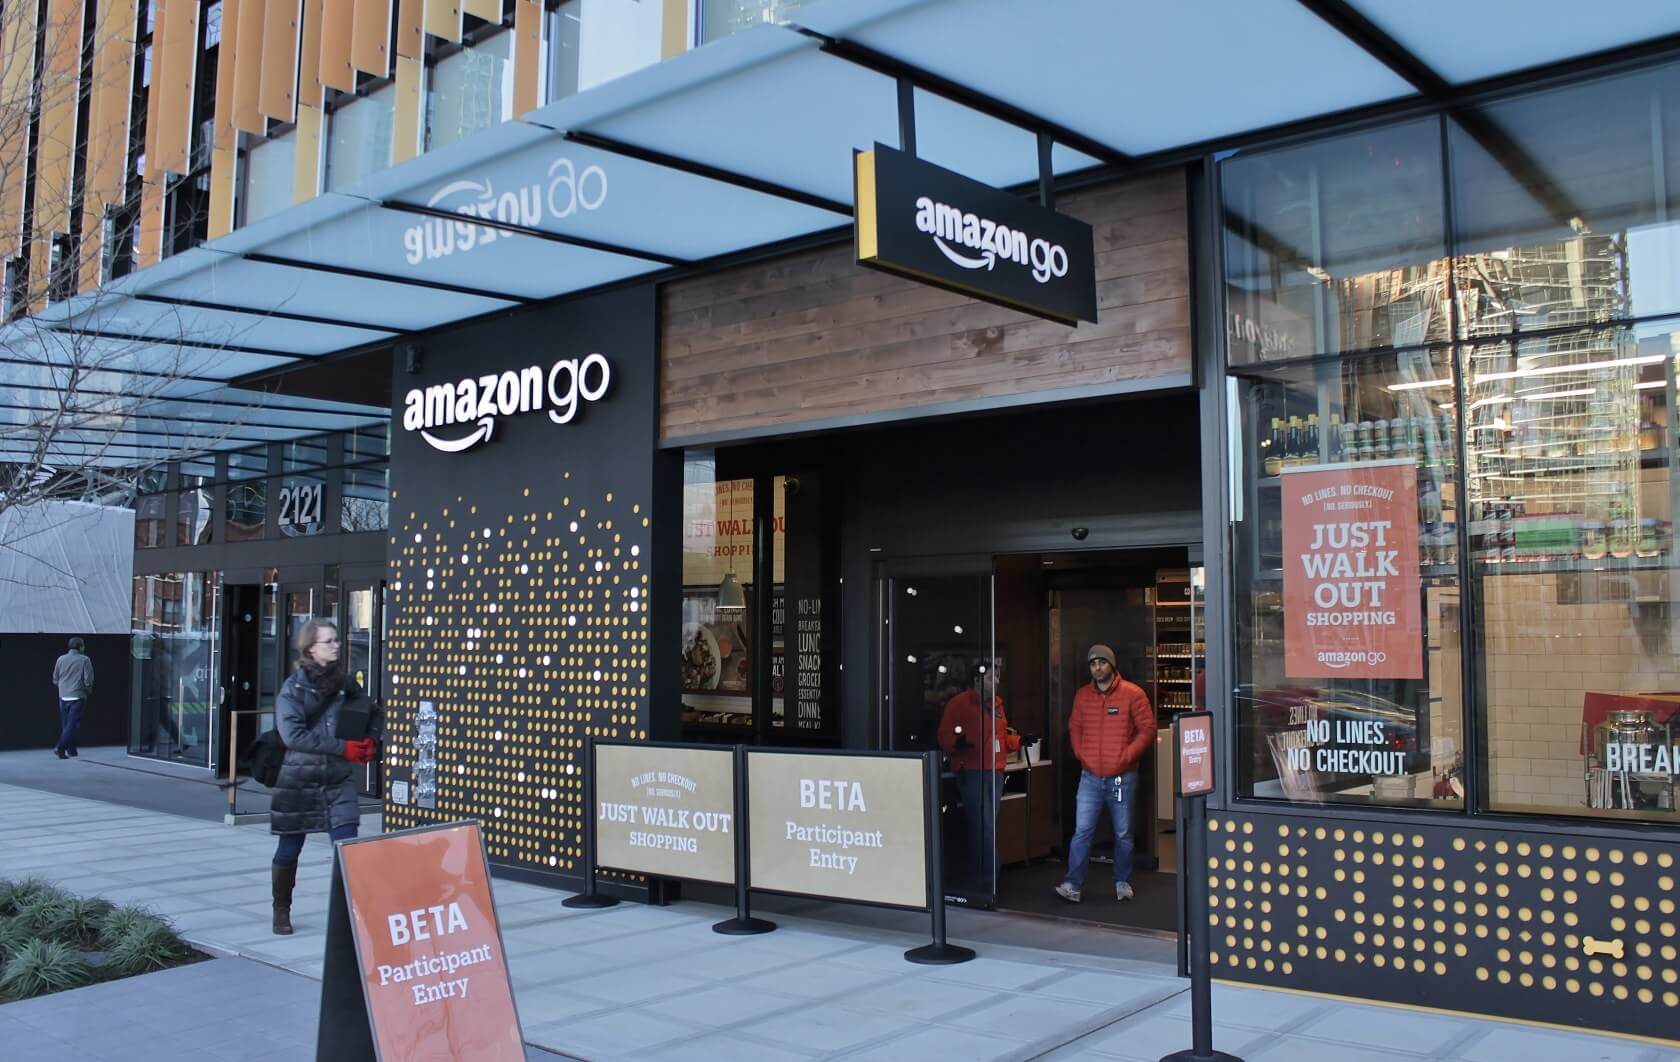 Amazon's Go store in NYC opens as the first to accept cash